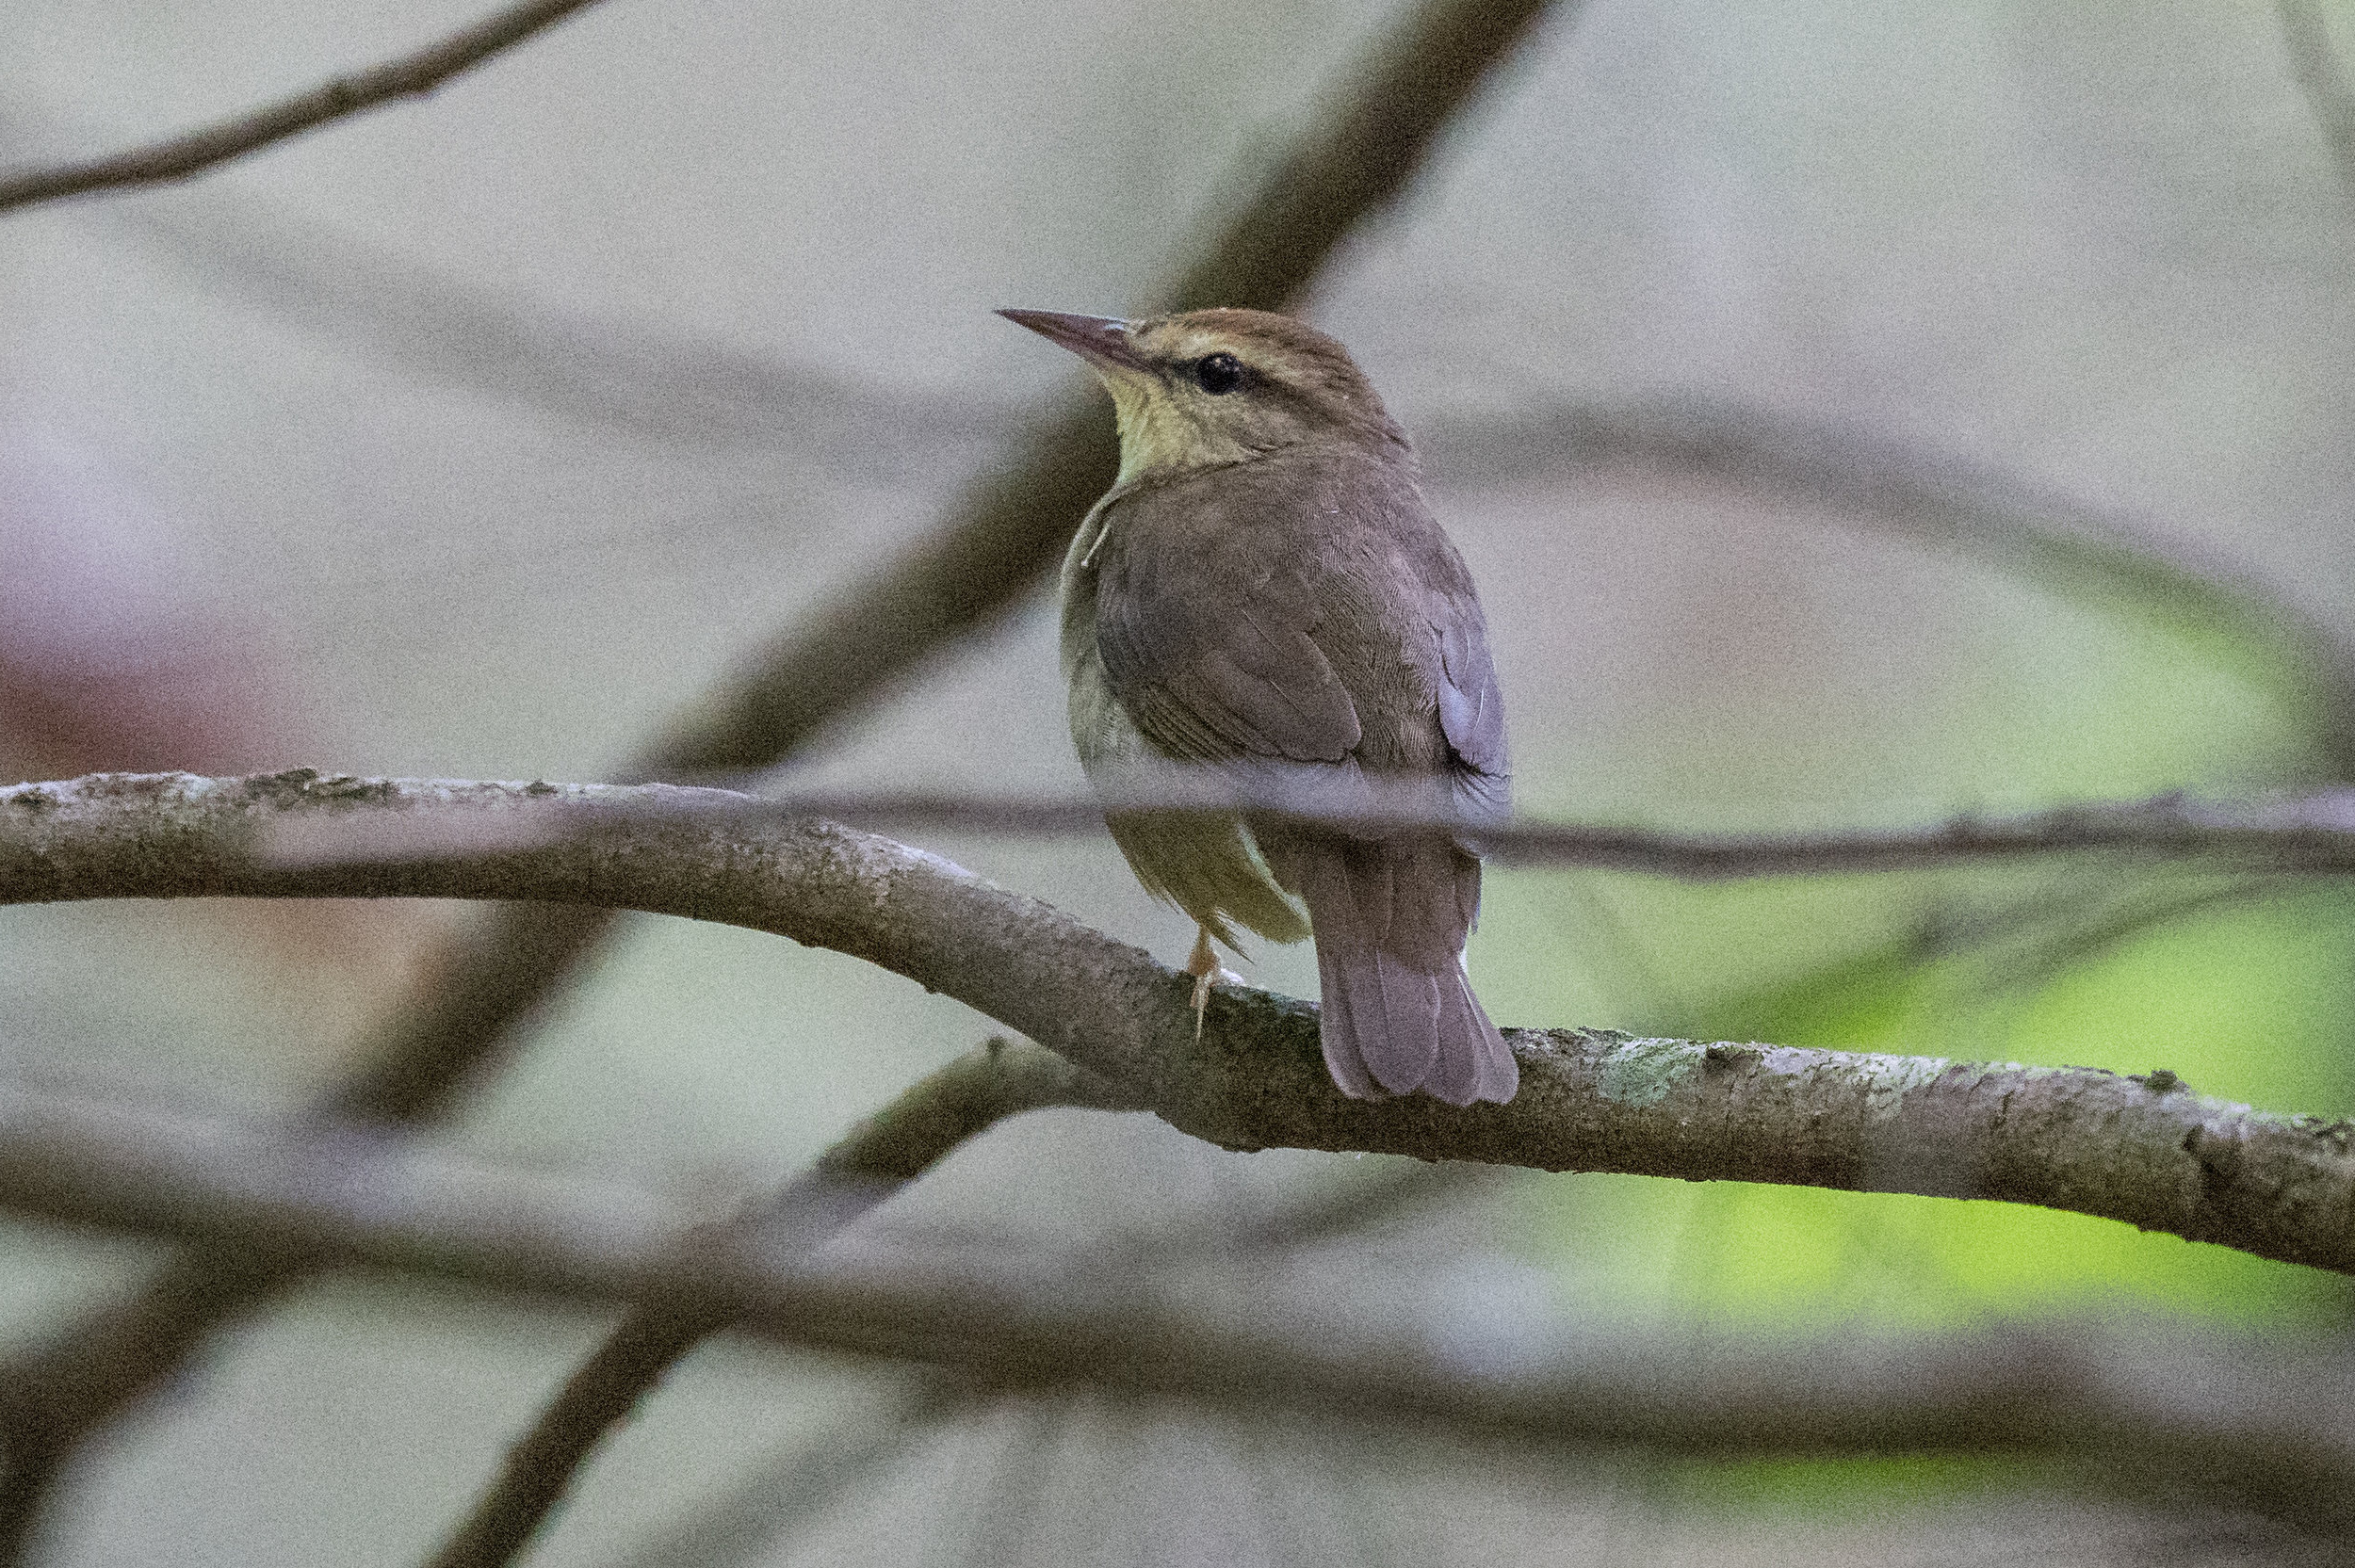 Swainson's Warbler (Limnothlypis swainsonii), Red River Gorge - Rock Bridge Road, WOL (KY)